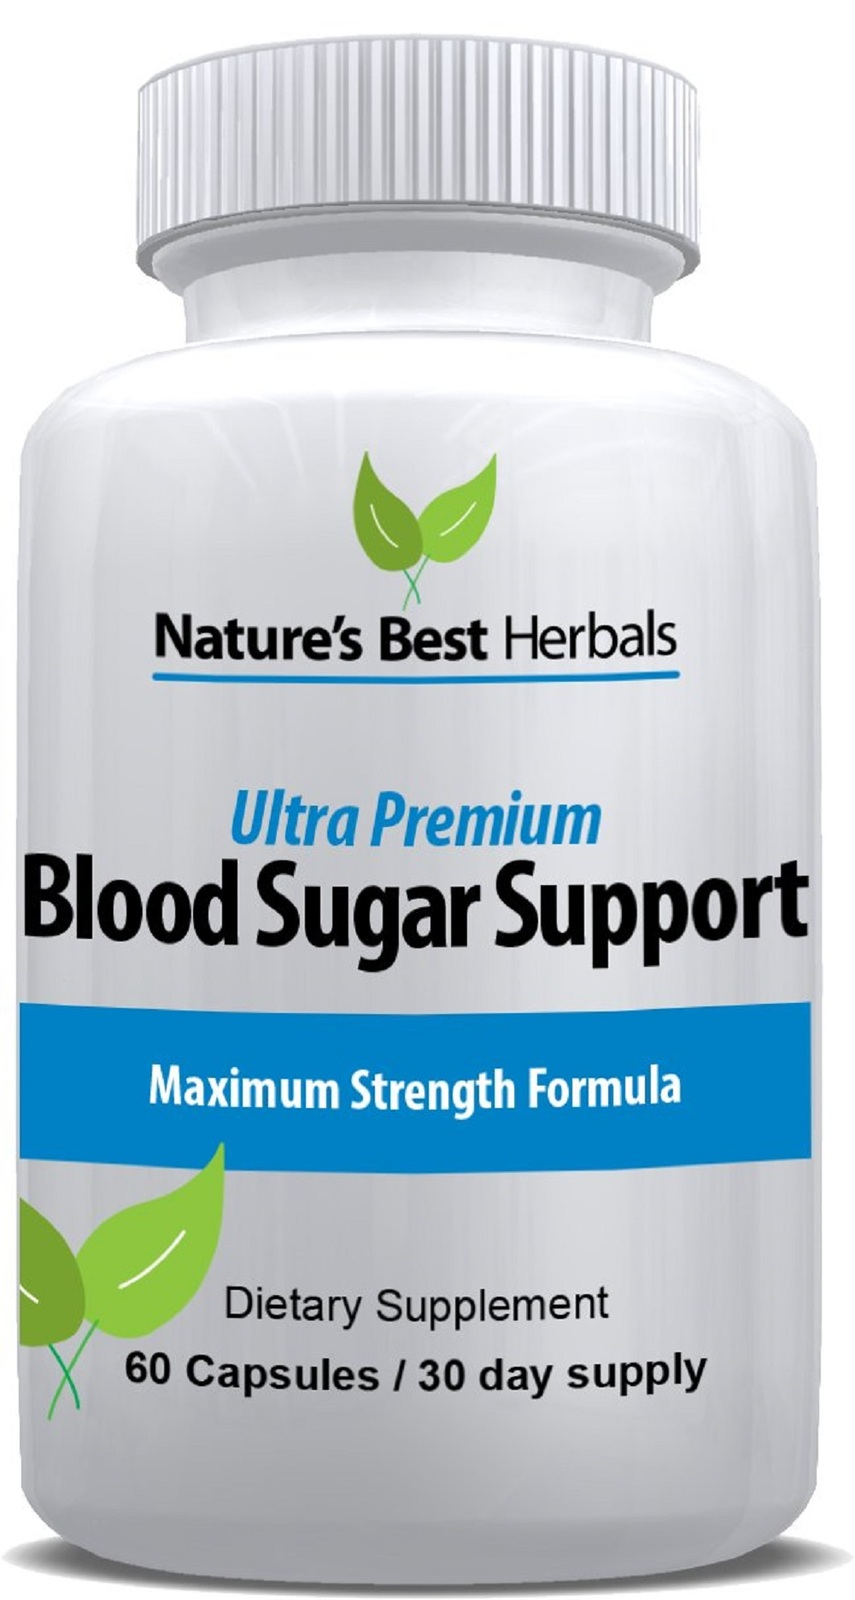 Primary image for Nature's Best Herbals - Ultra Premium Blood Sugar Support Supplement 60 Capsules